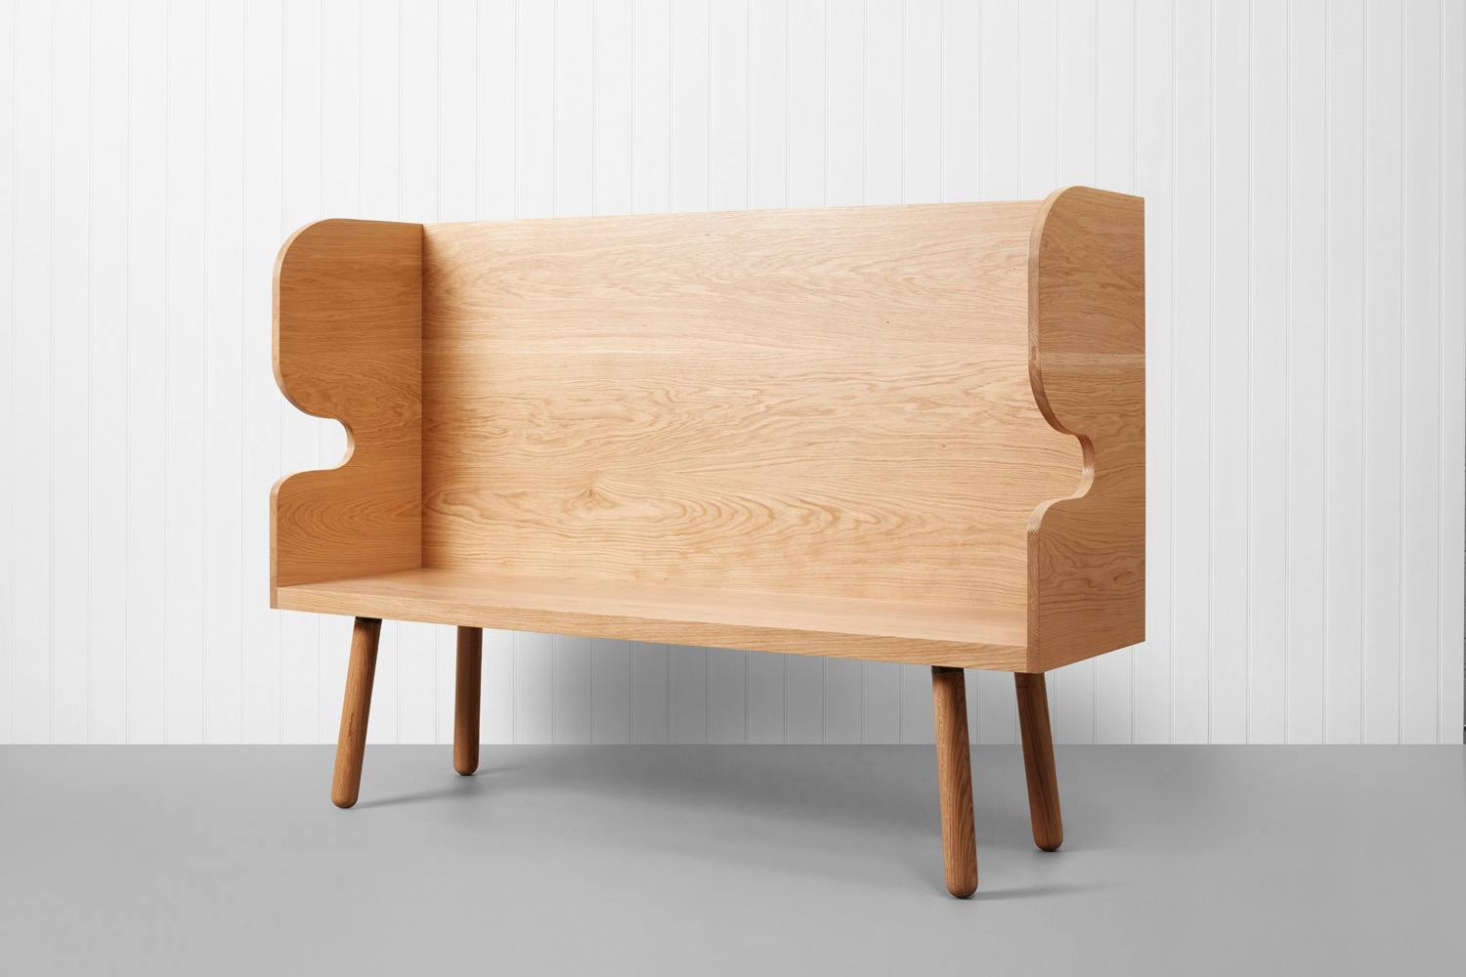 craftsmen furniture. The Plank Settle Is An Interpretation Of Old English Found In Pubs And Churches Craftsmen Furniture E